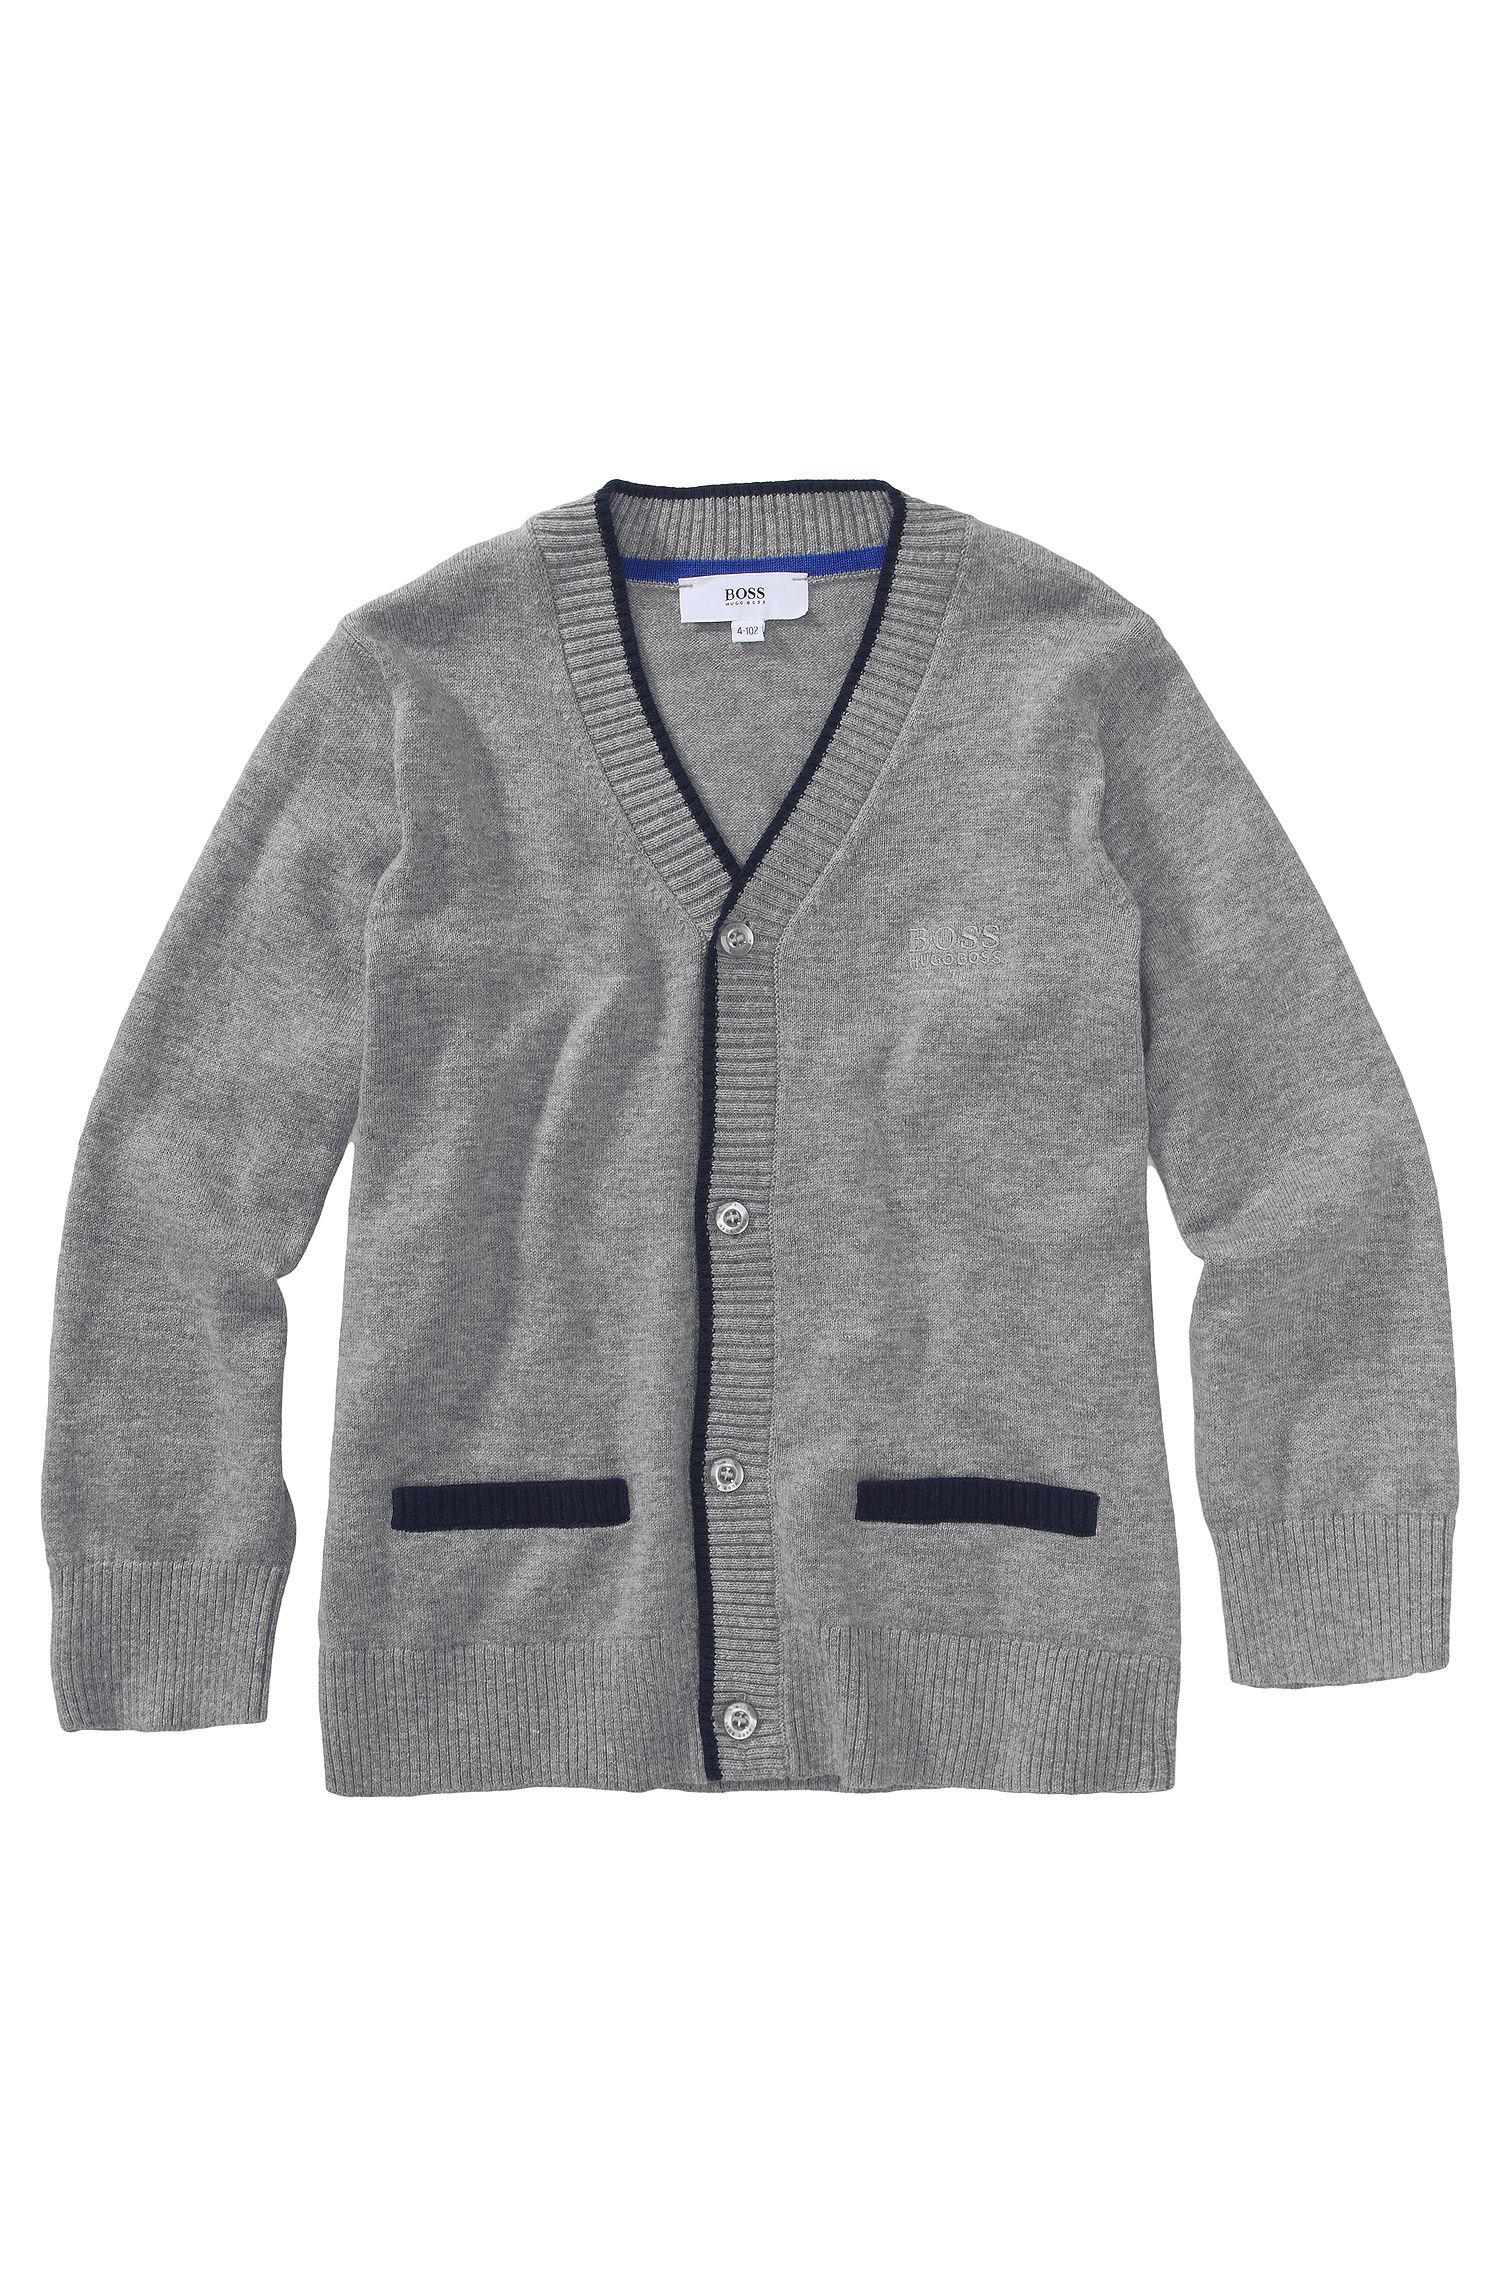 Kids Cardigan ´J25551/A30` aus Baumwollkomposition